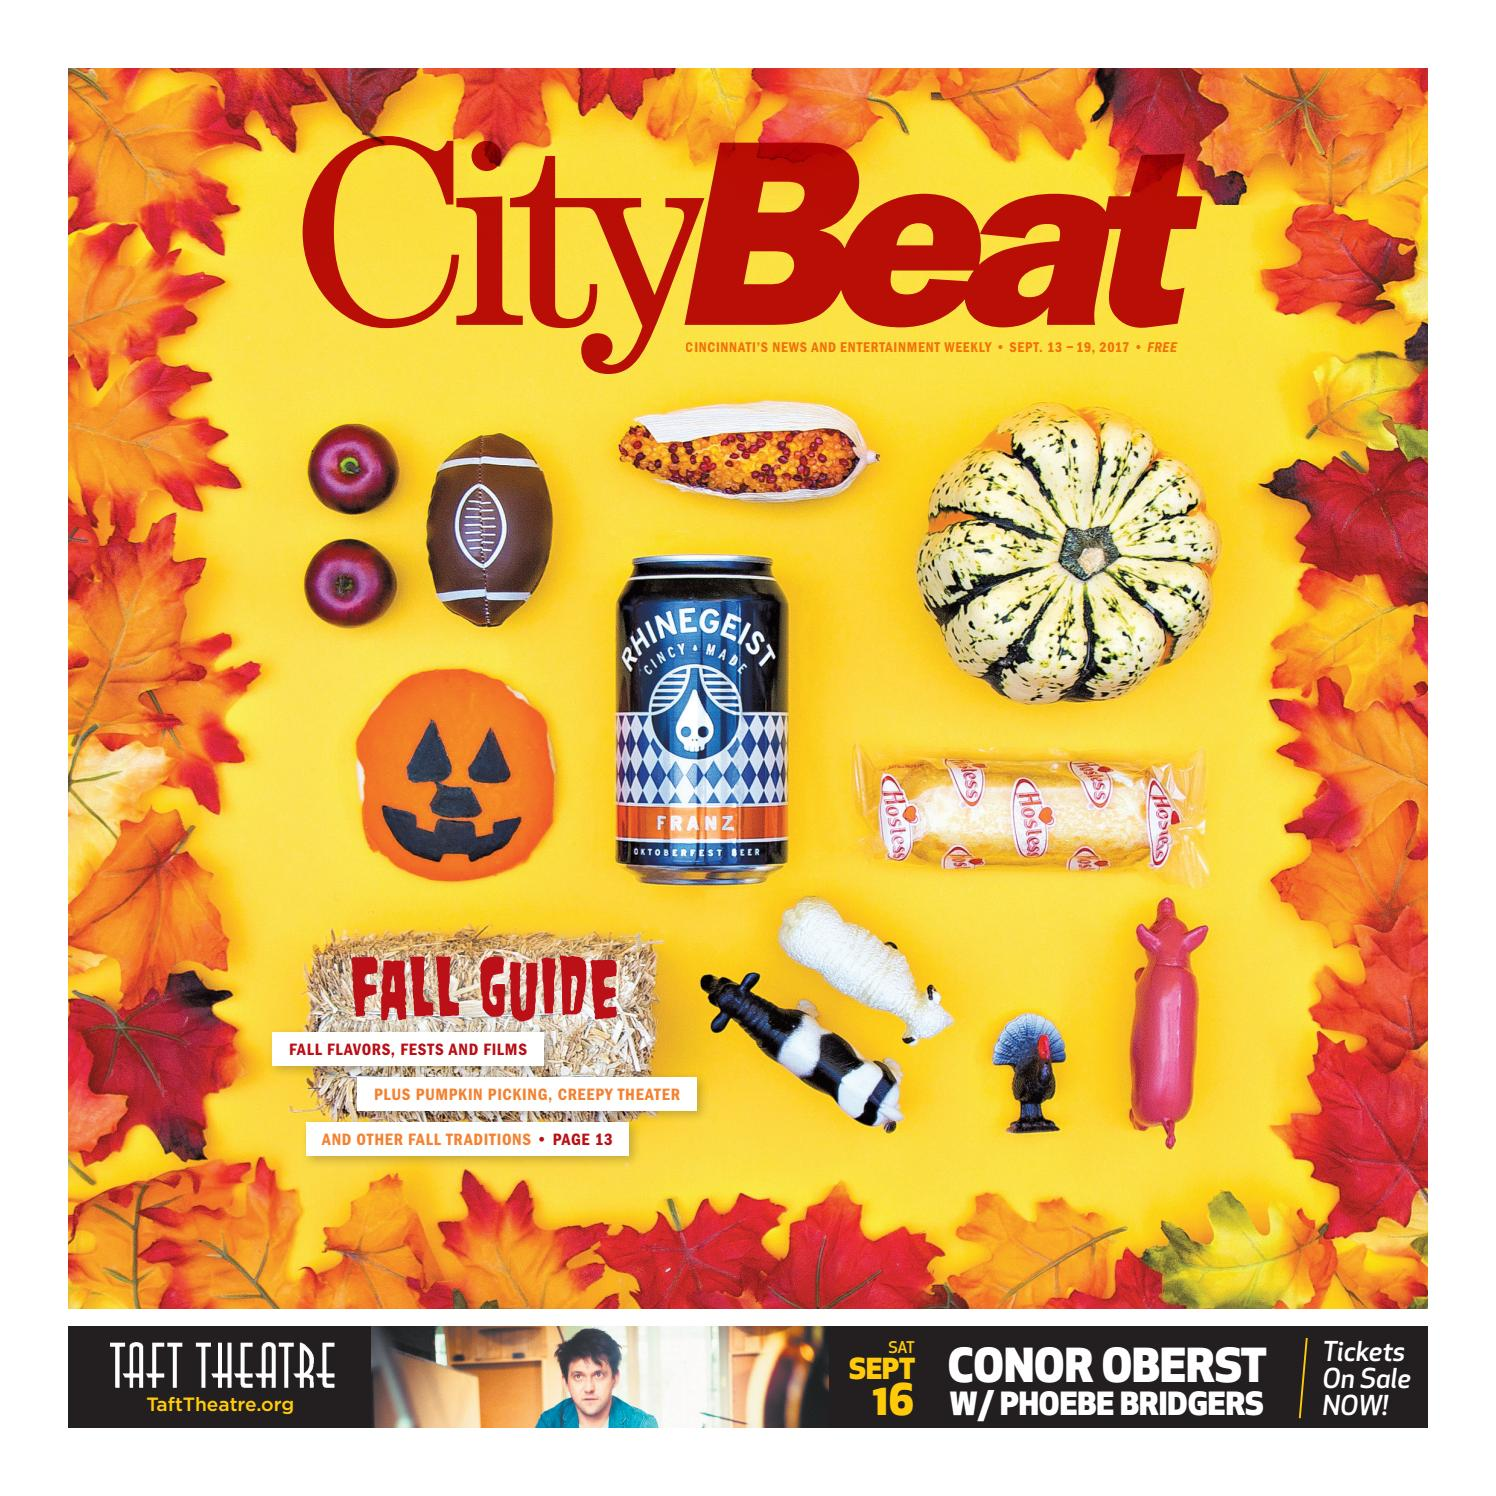 CityBeat Sept 13 2017 by Cincinnati CityBeat issuu